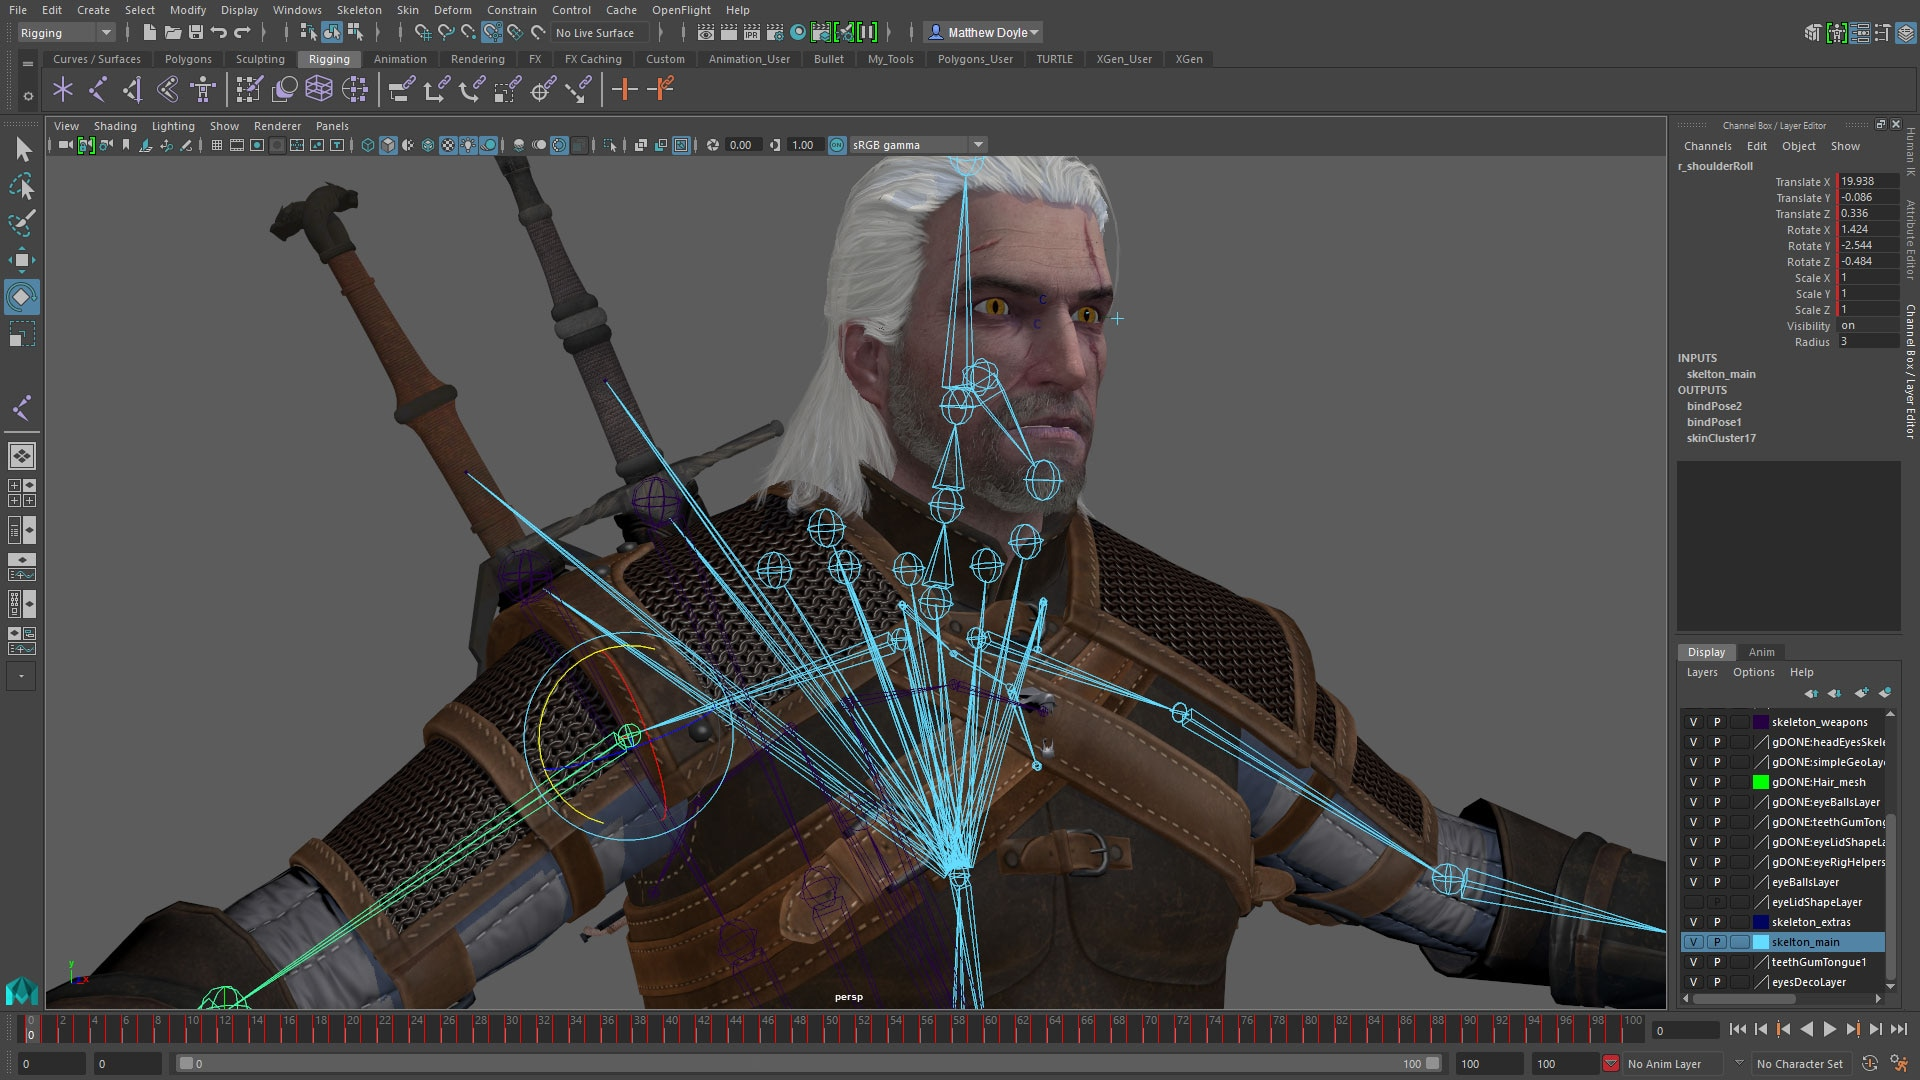 Autodesk for Games